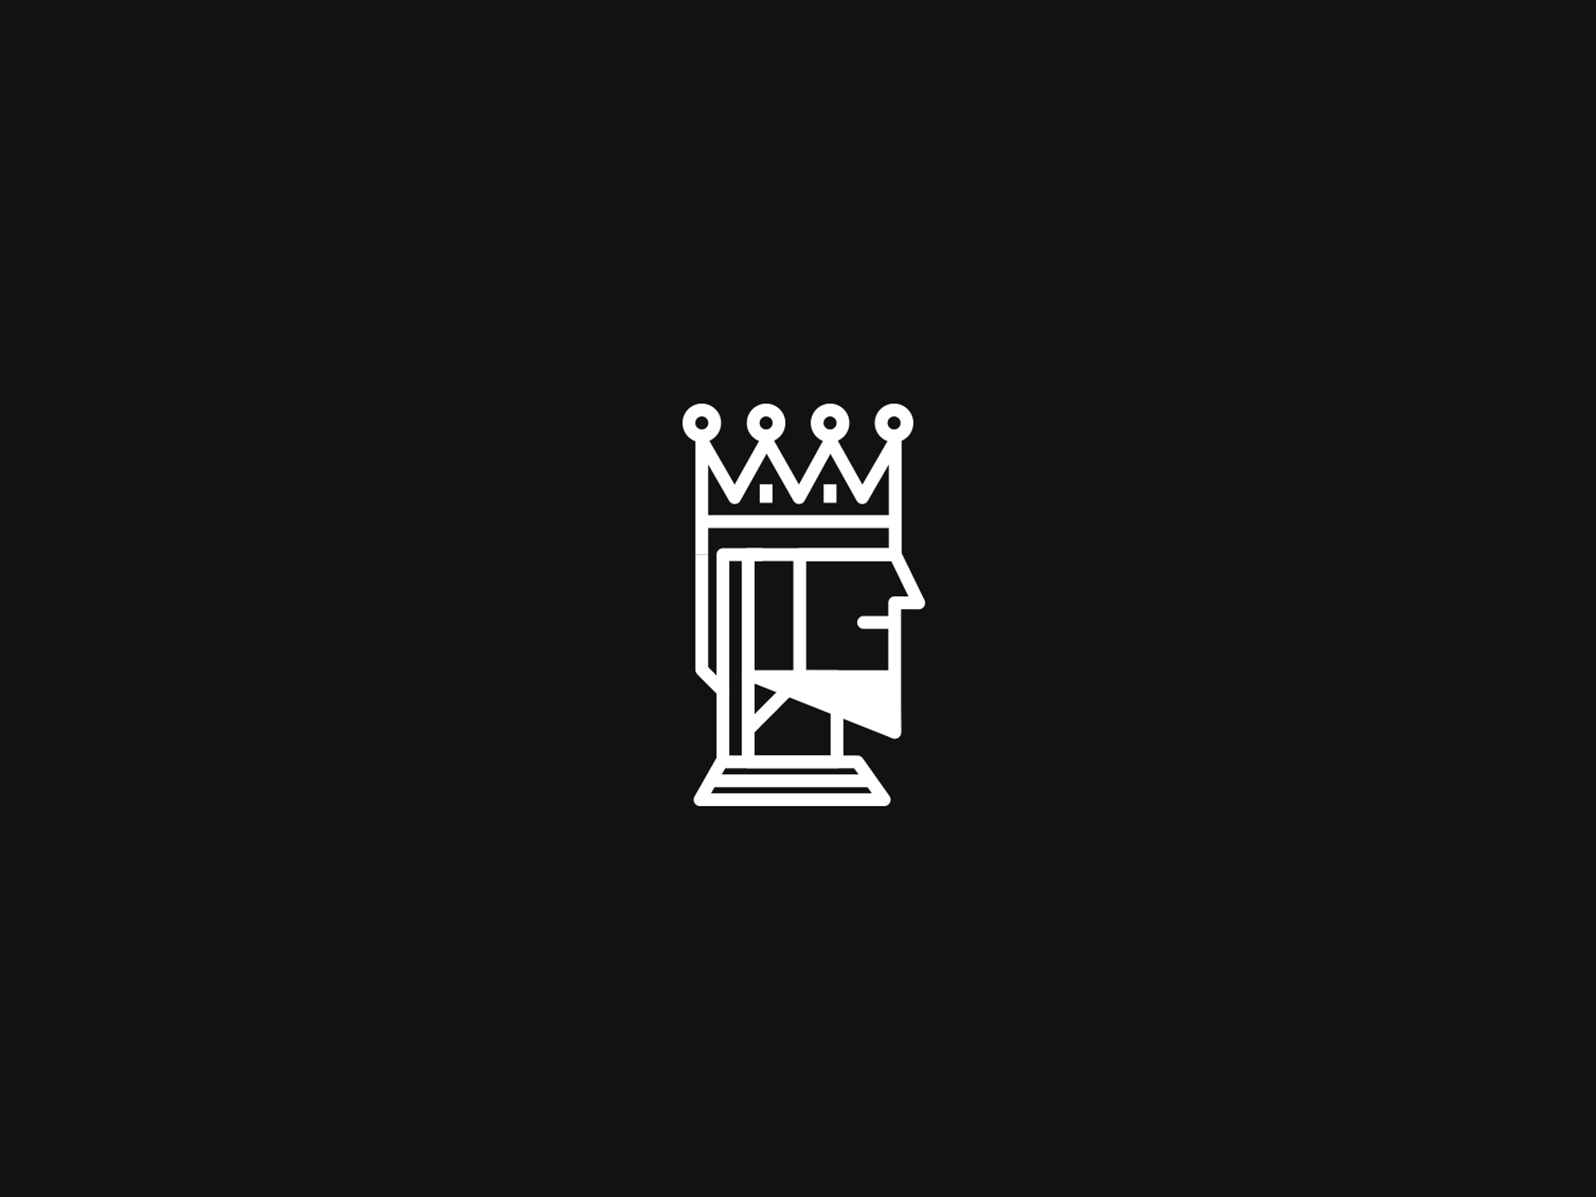 Kings logomark icondesign modern digital graphic digitalart art petros afshar brand design logo design digital art design brand iconography icon logo branding illustration graphic design vector